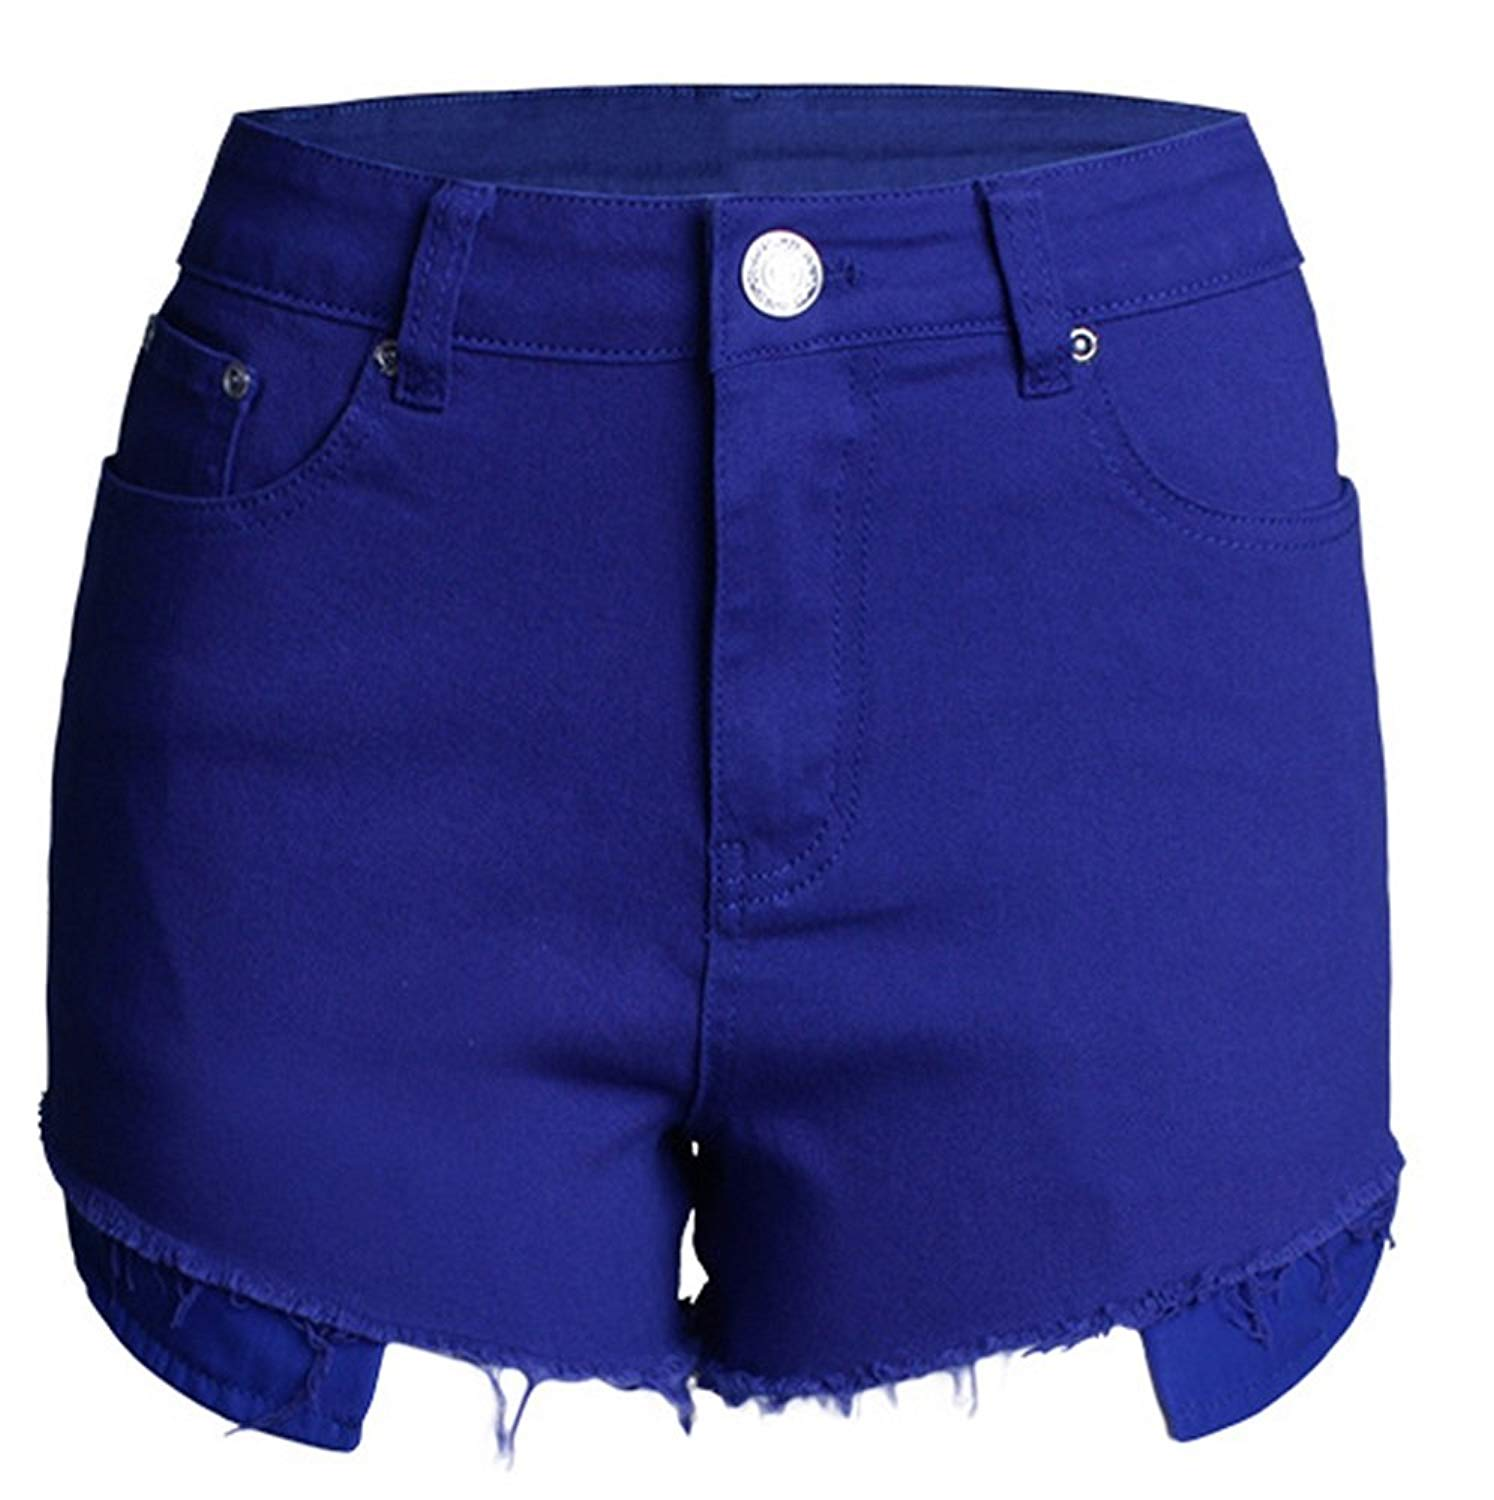 Allonly Womens Cut Off Destroyed High Waisted Slim Fit Embroidered Denim Shorts Jean Shorts Hot Pants With Holes